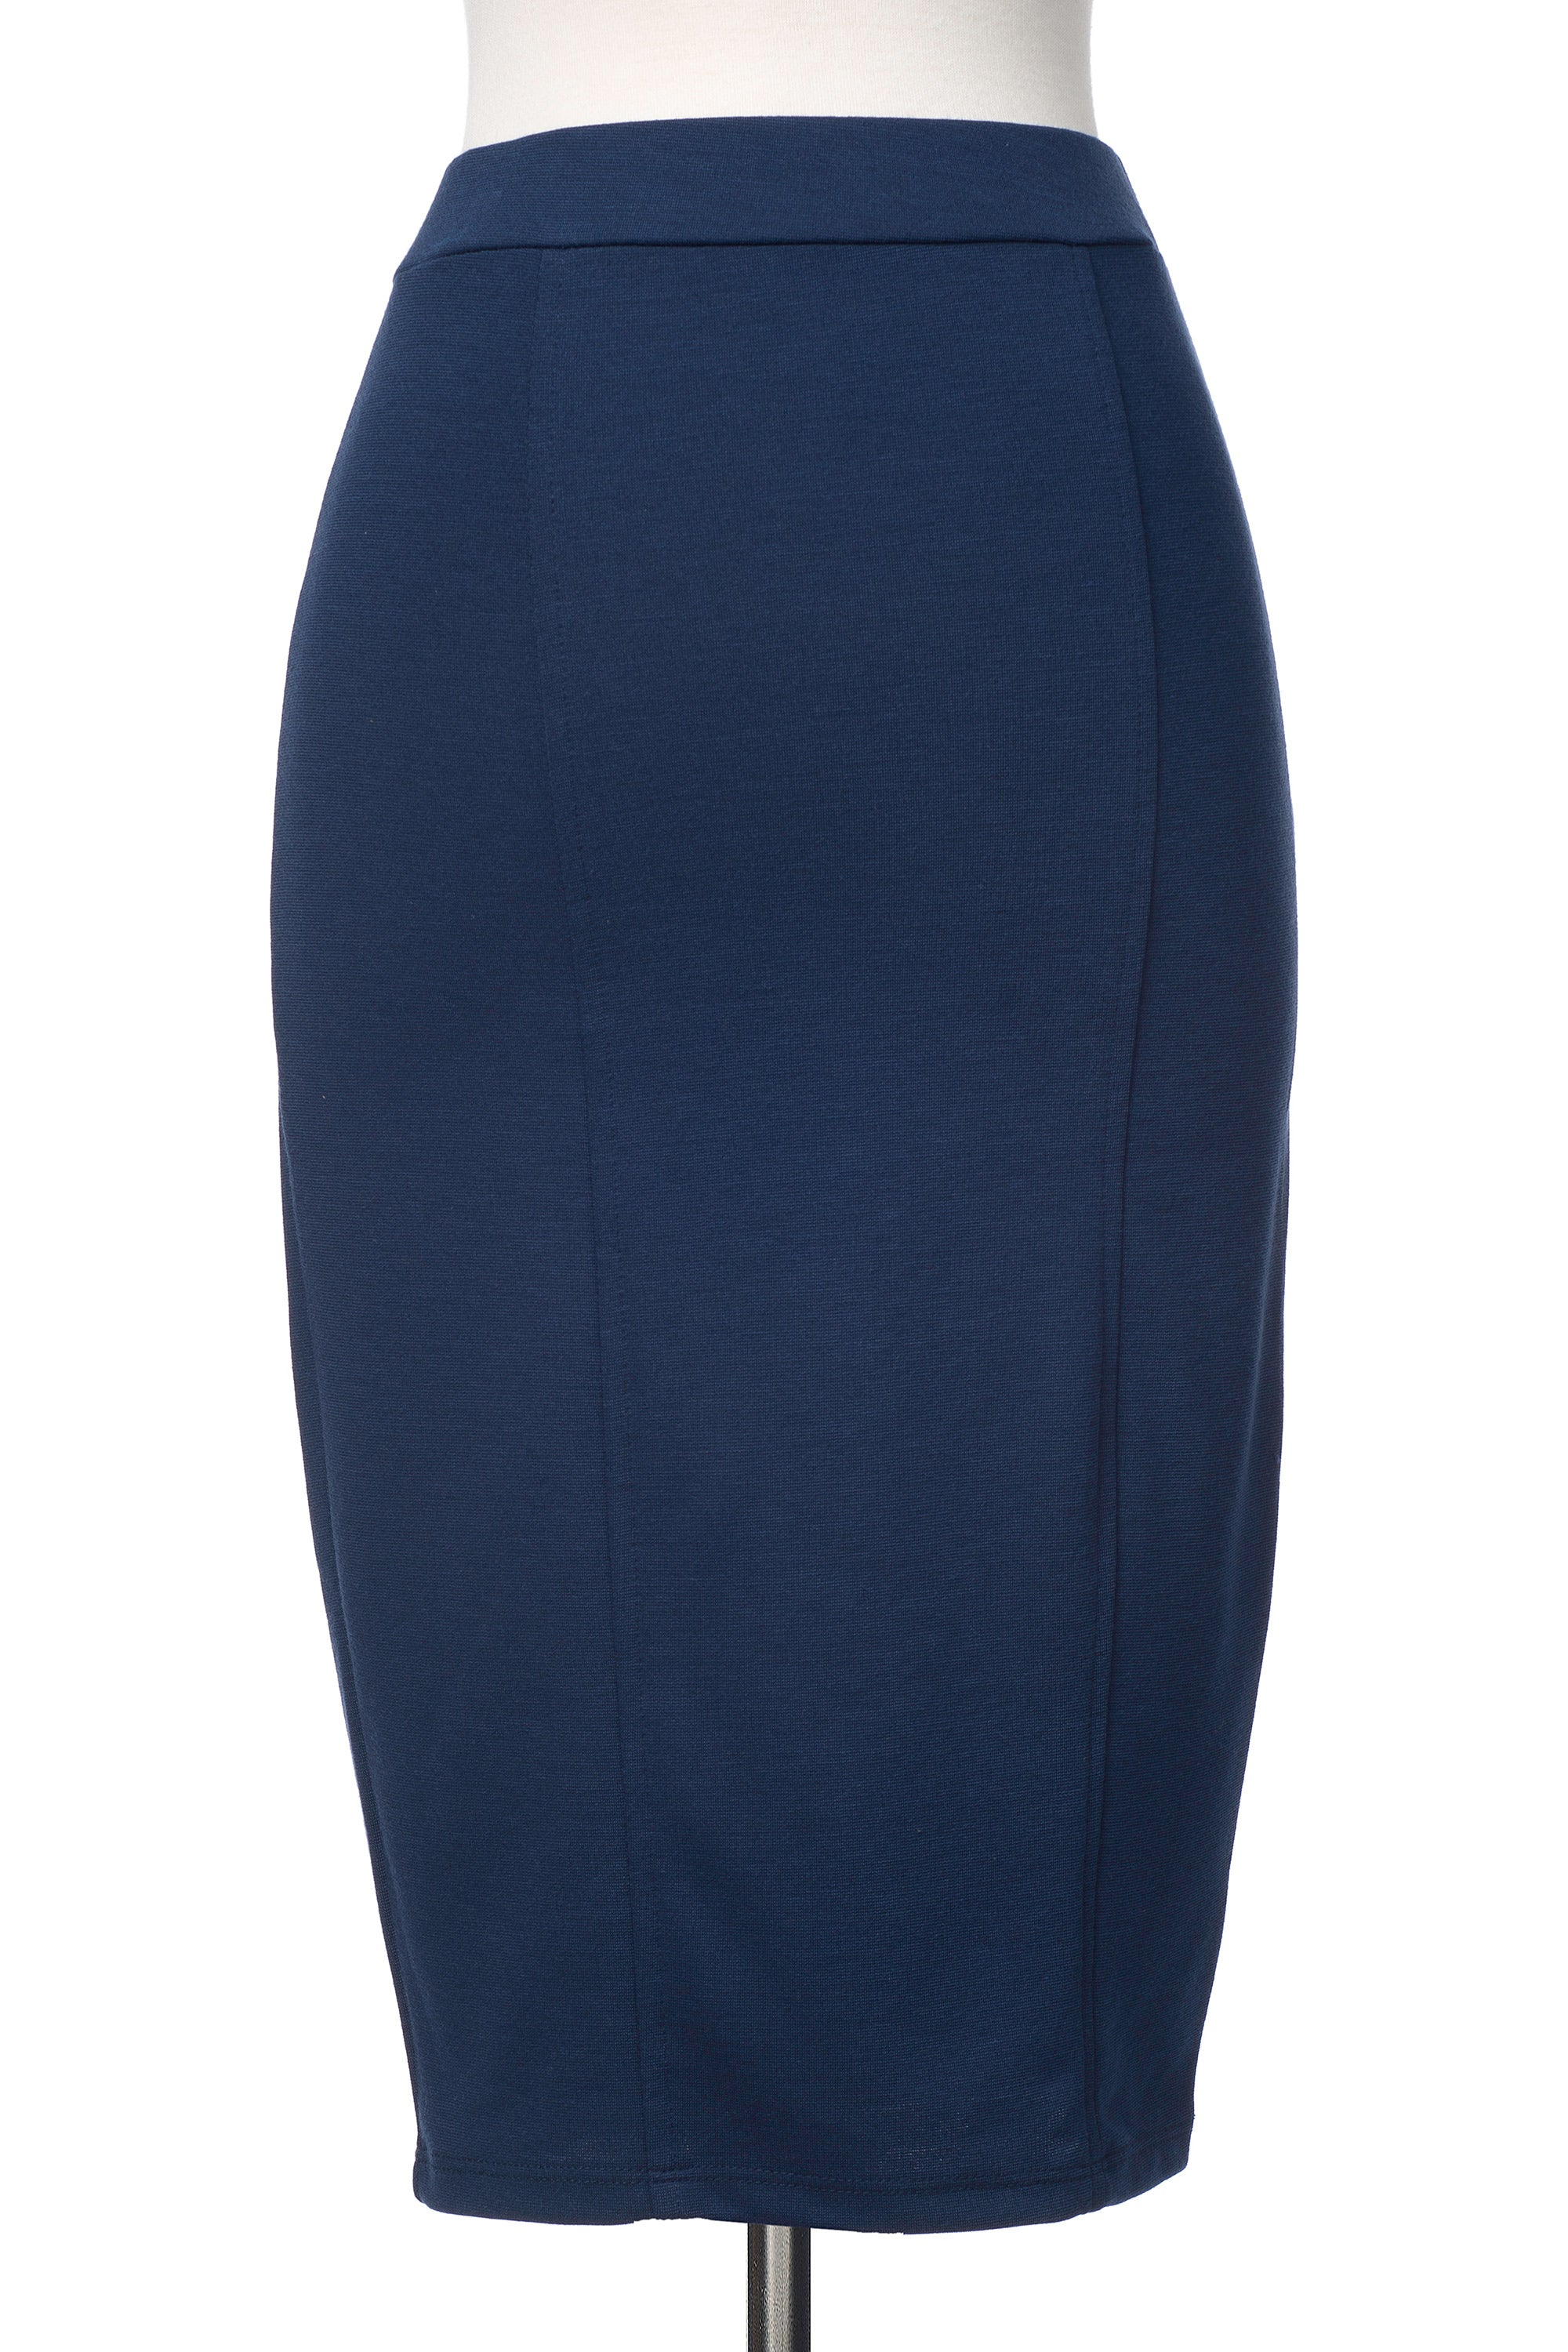 Type 2 Blueberry Skirt